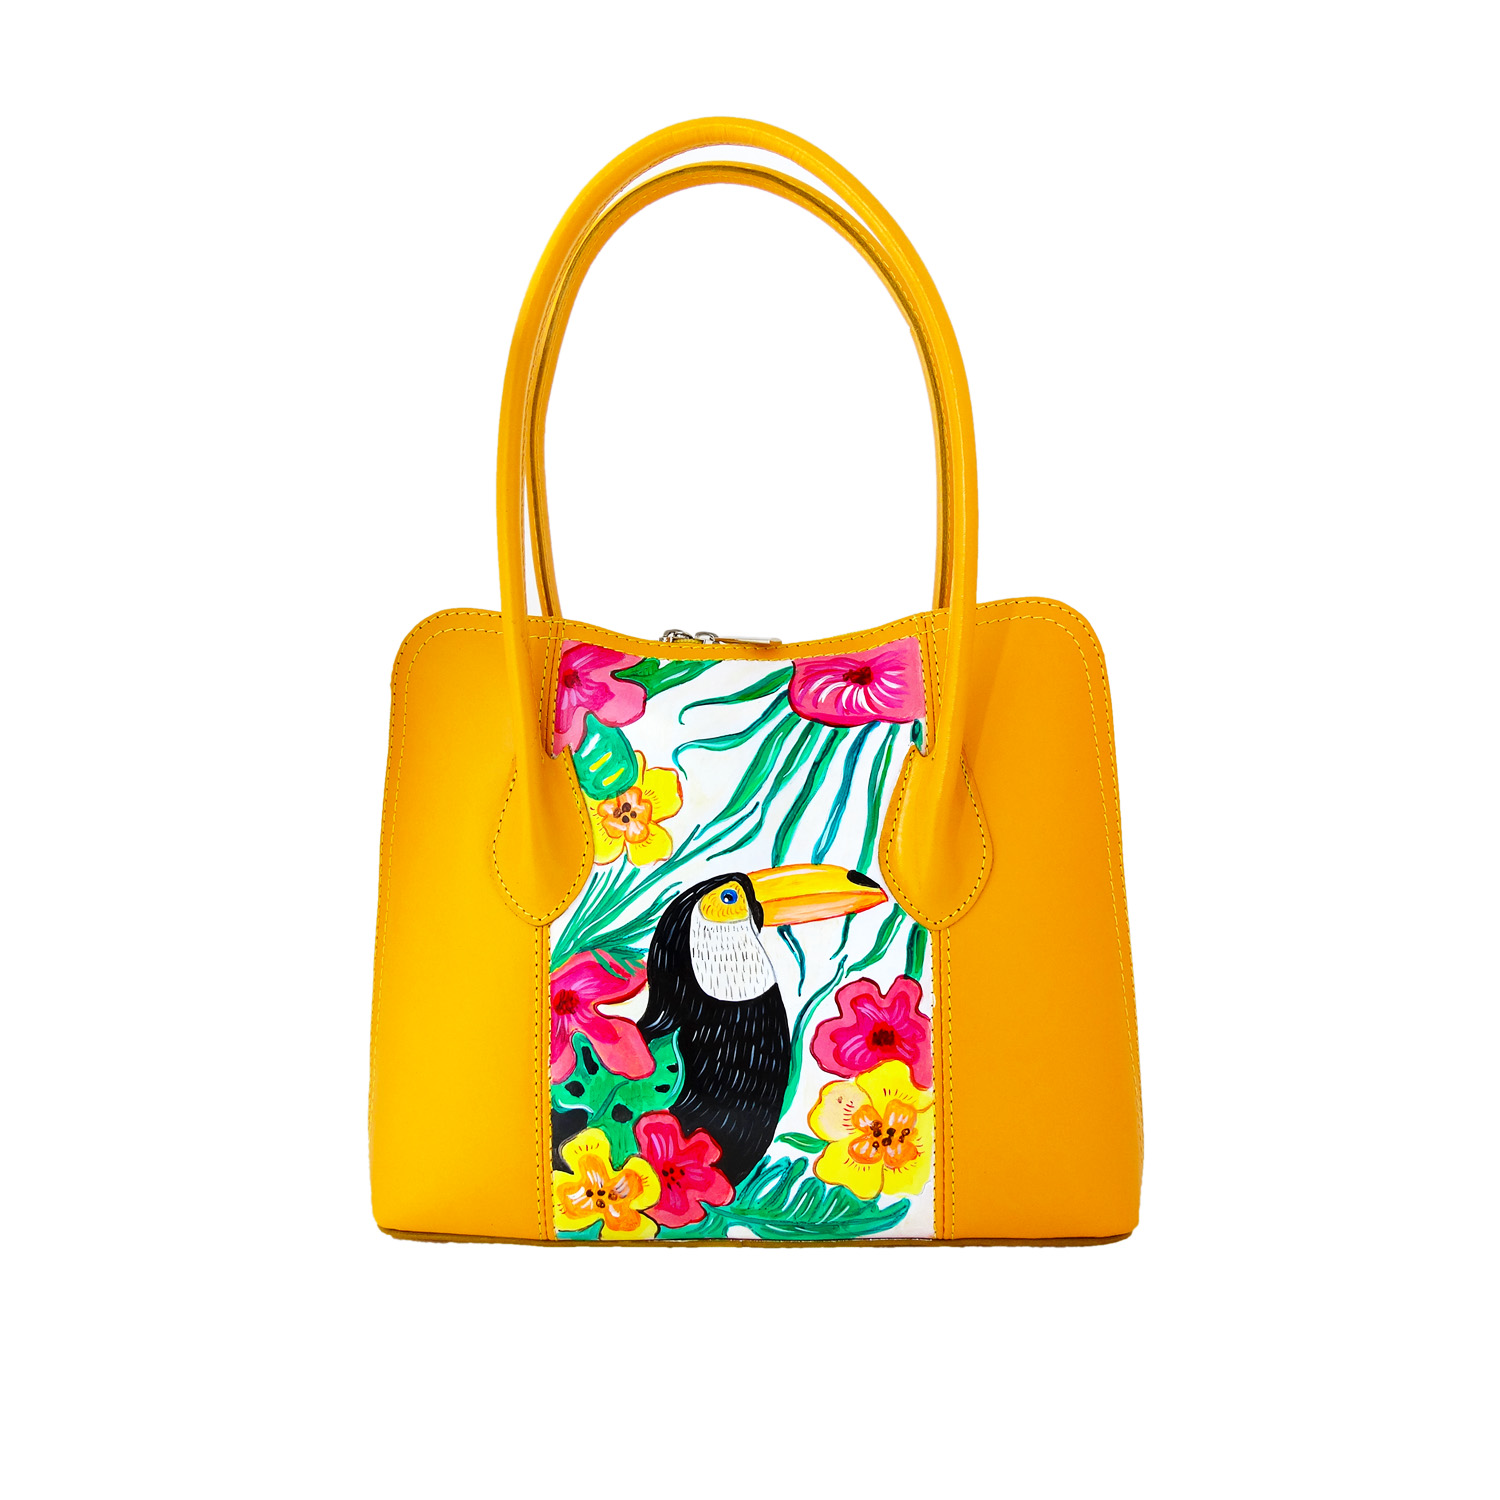 Hand-painted bag - Toucan and Brazil